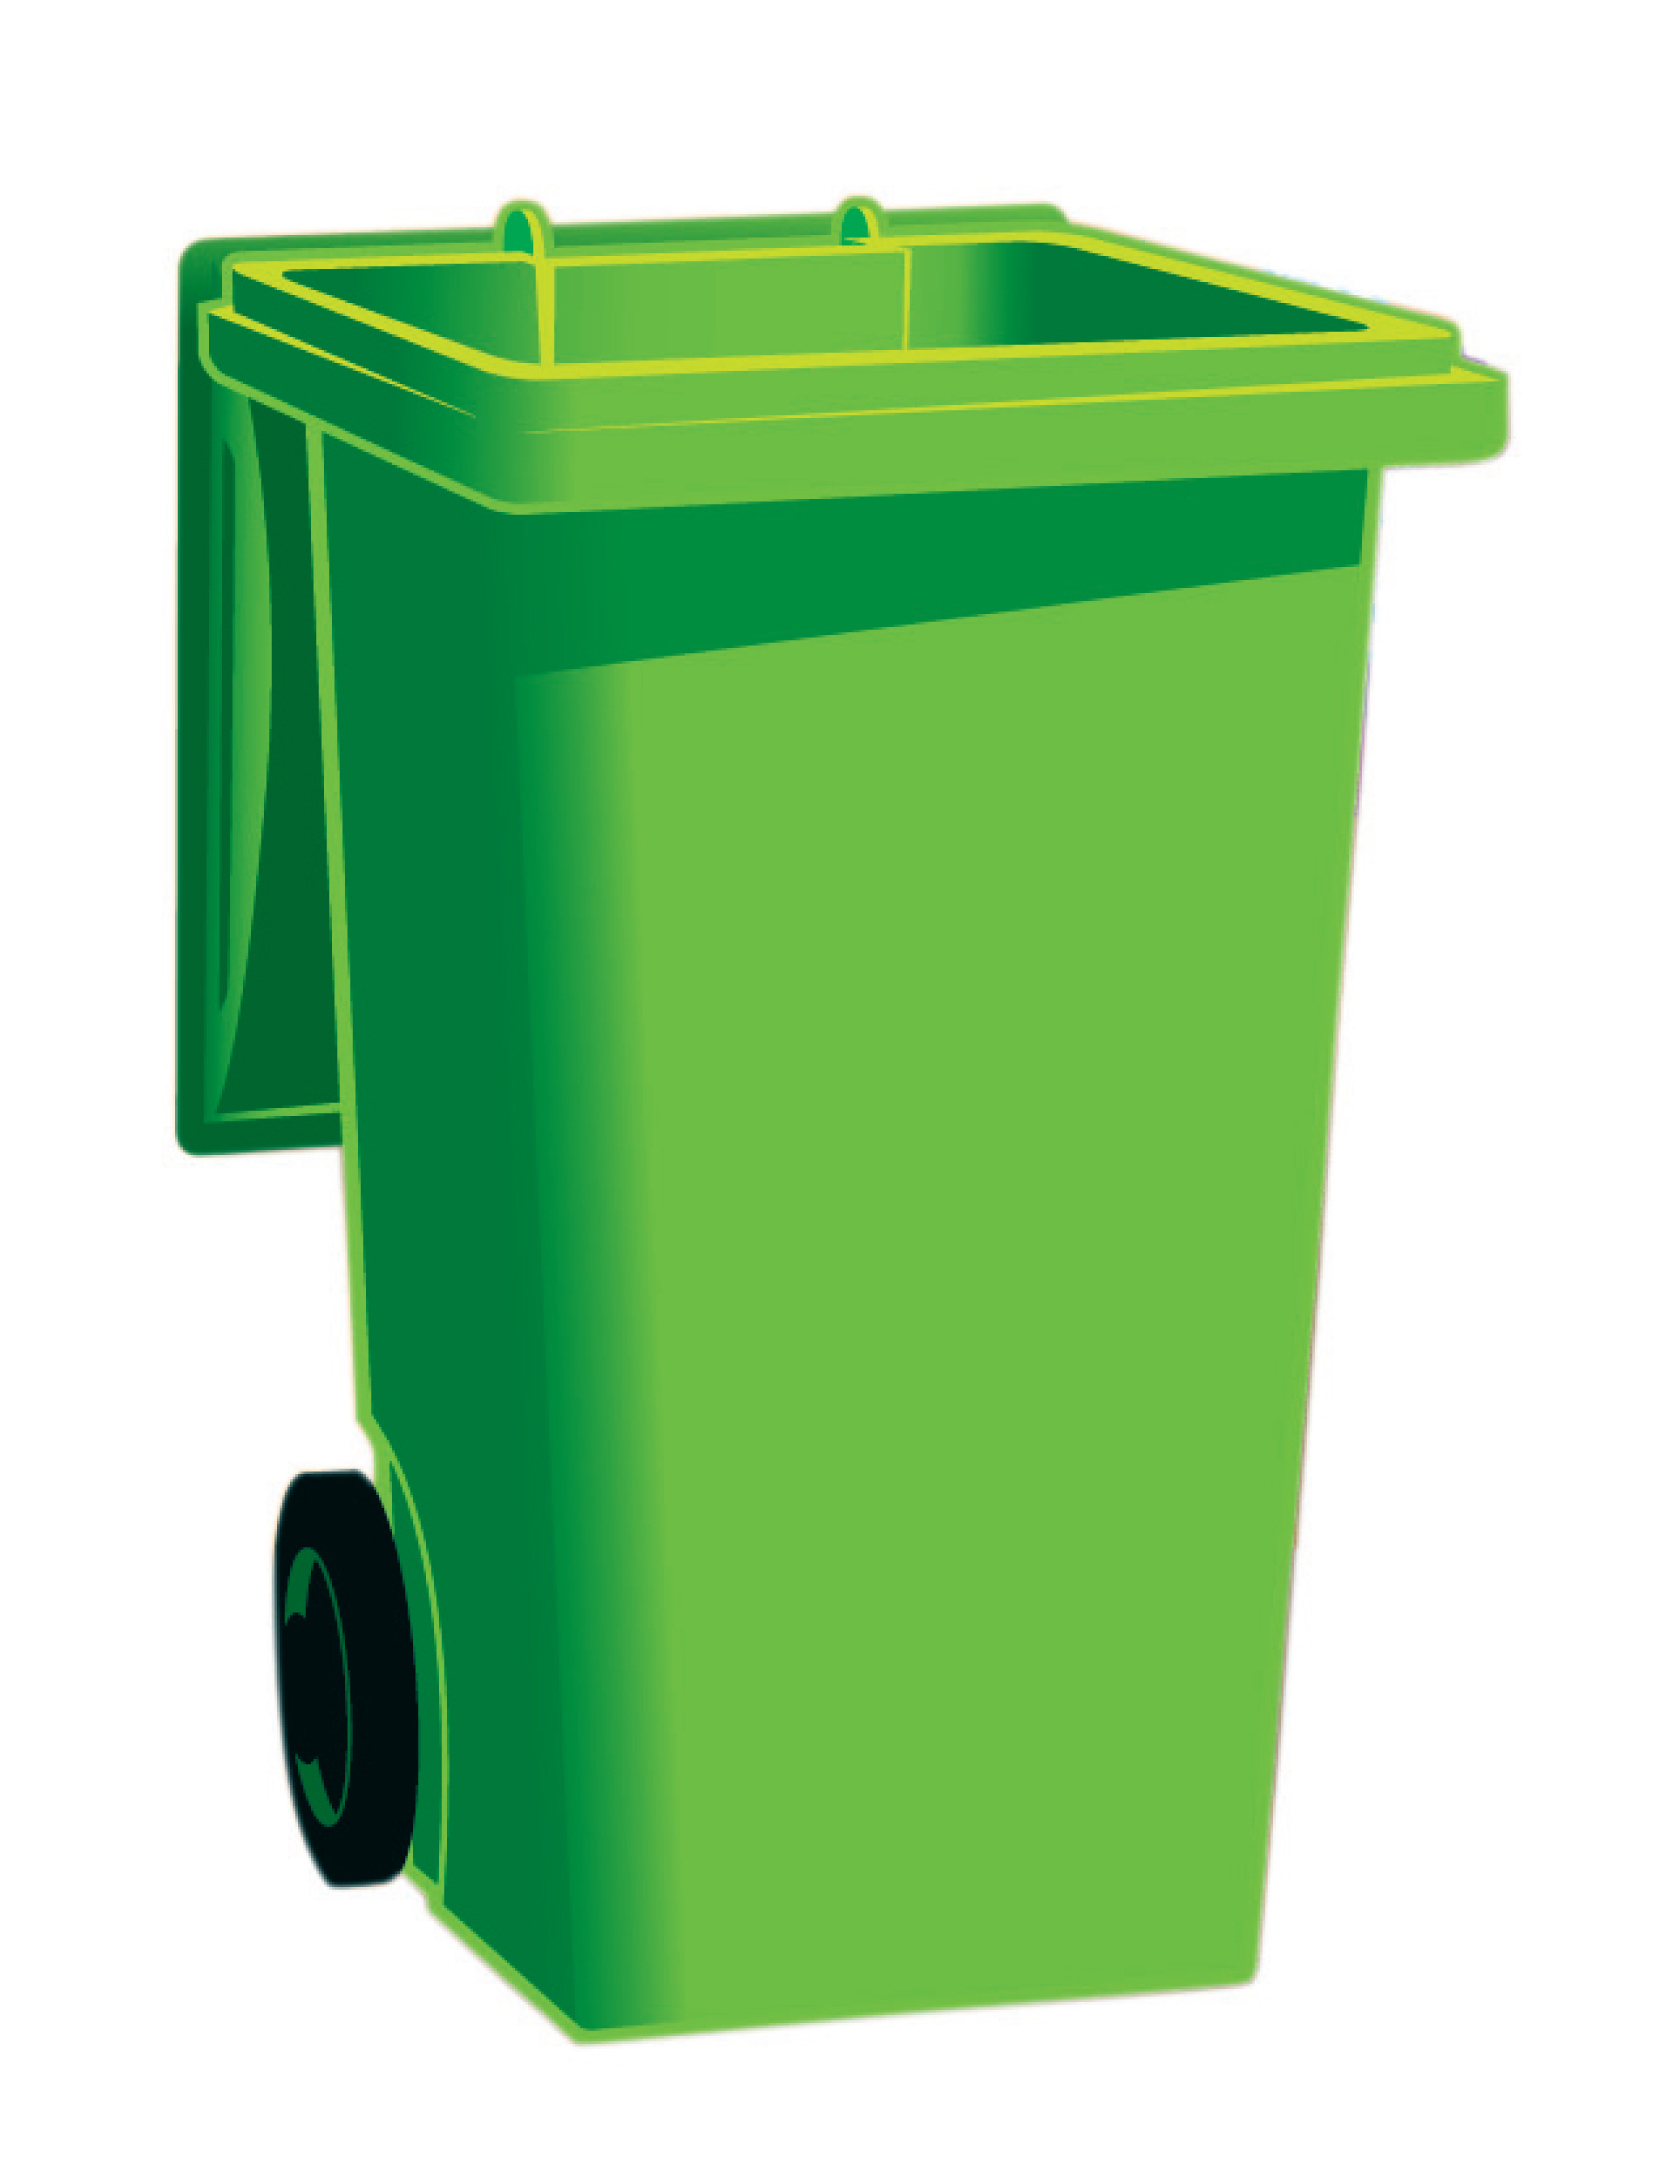 Green Bin - Maidstone Borough Council